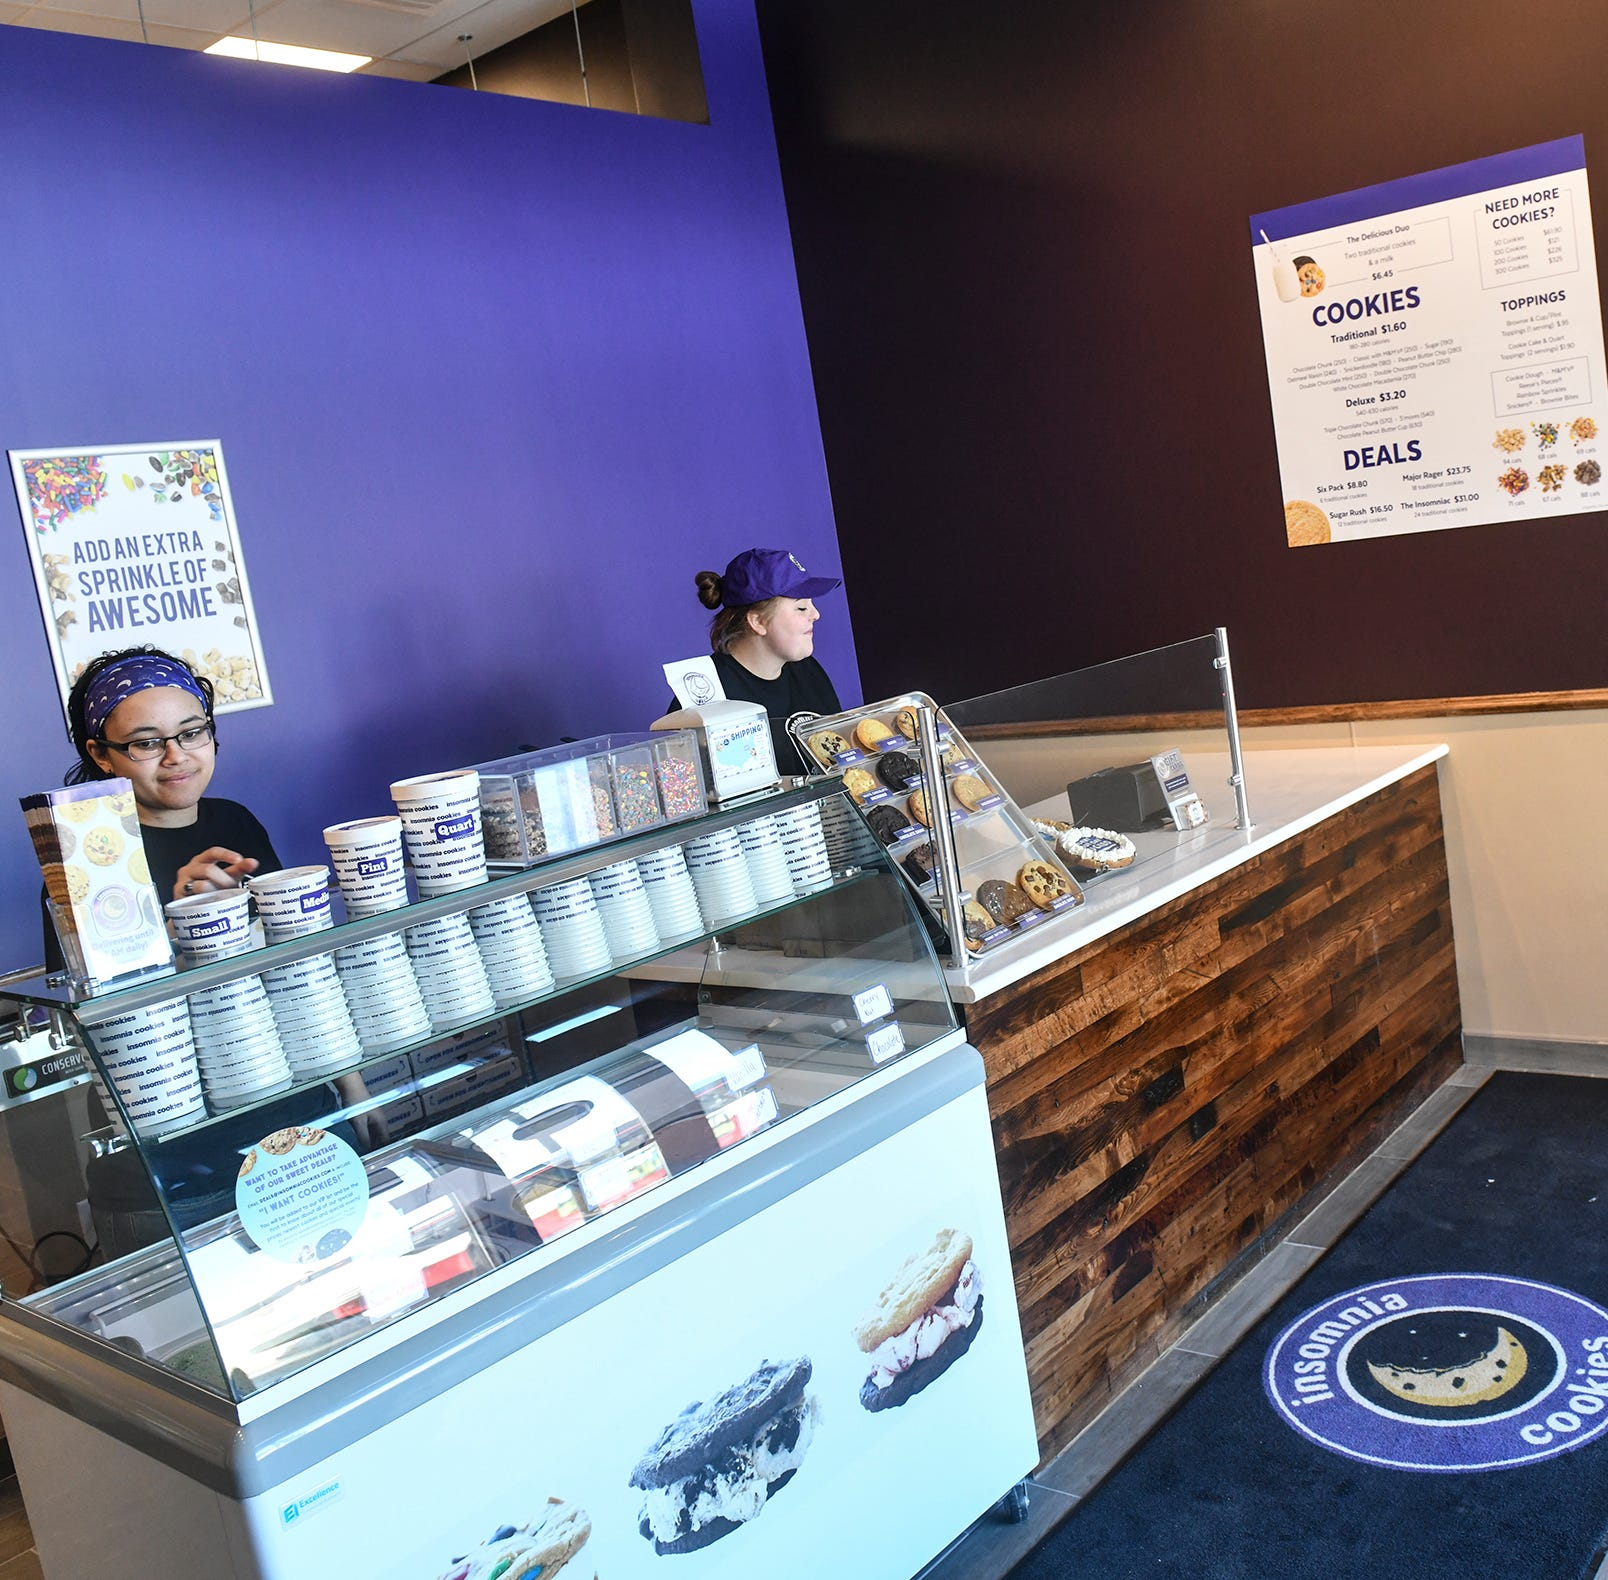 Cookie connoisseurs rejoice! Insomnia Cookies opens in St. Cloud